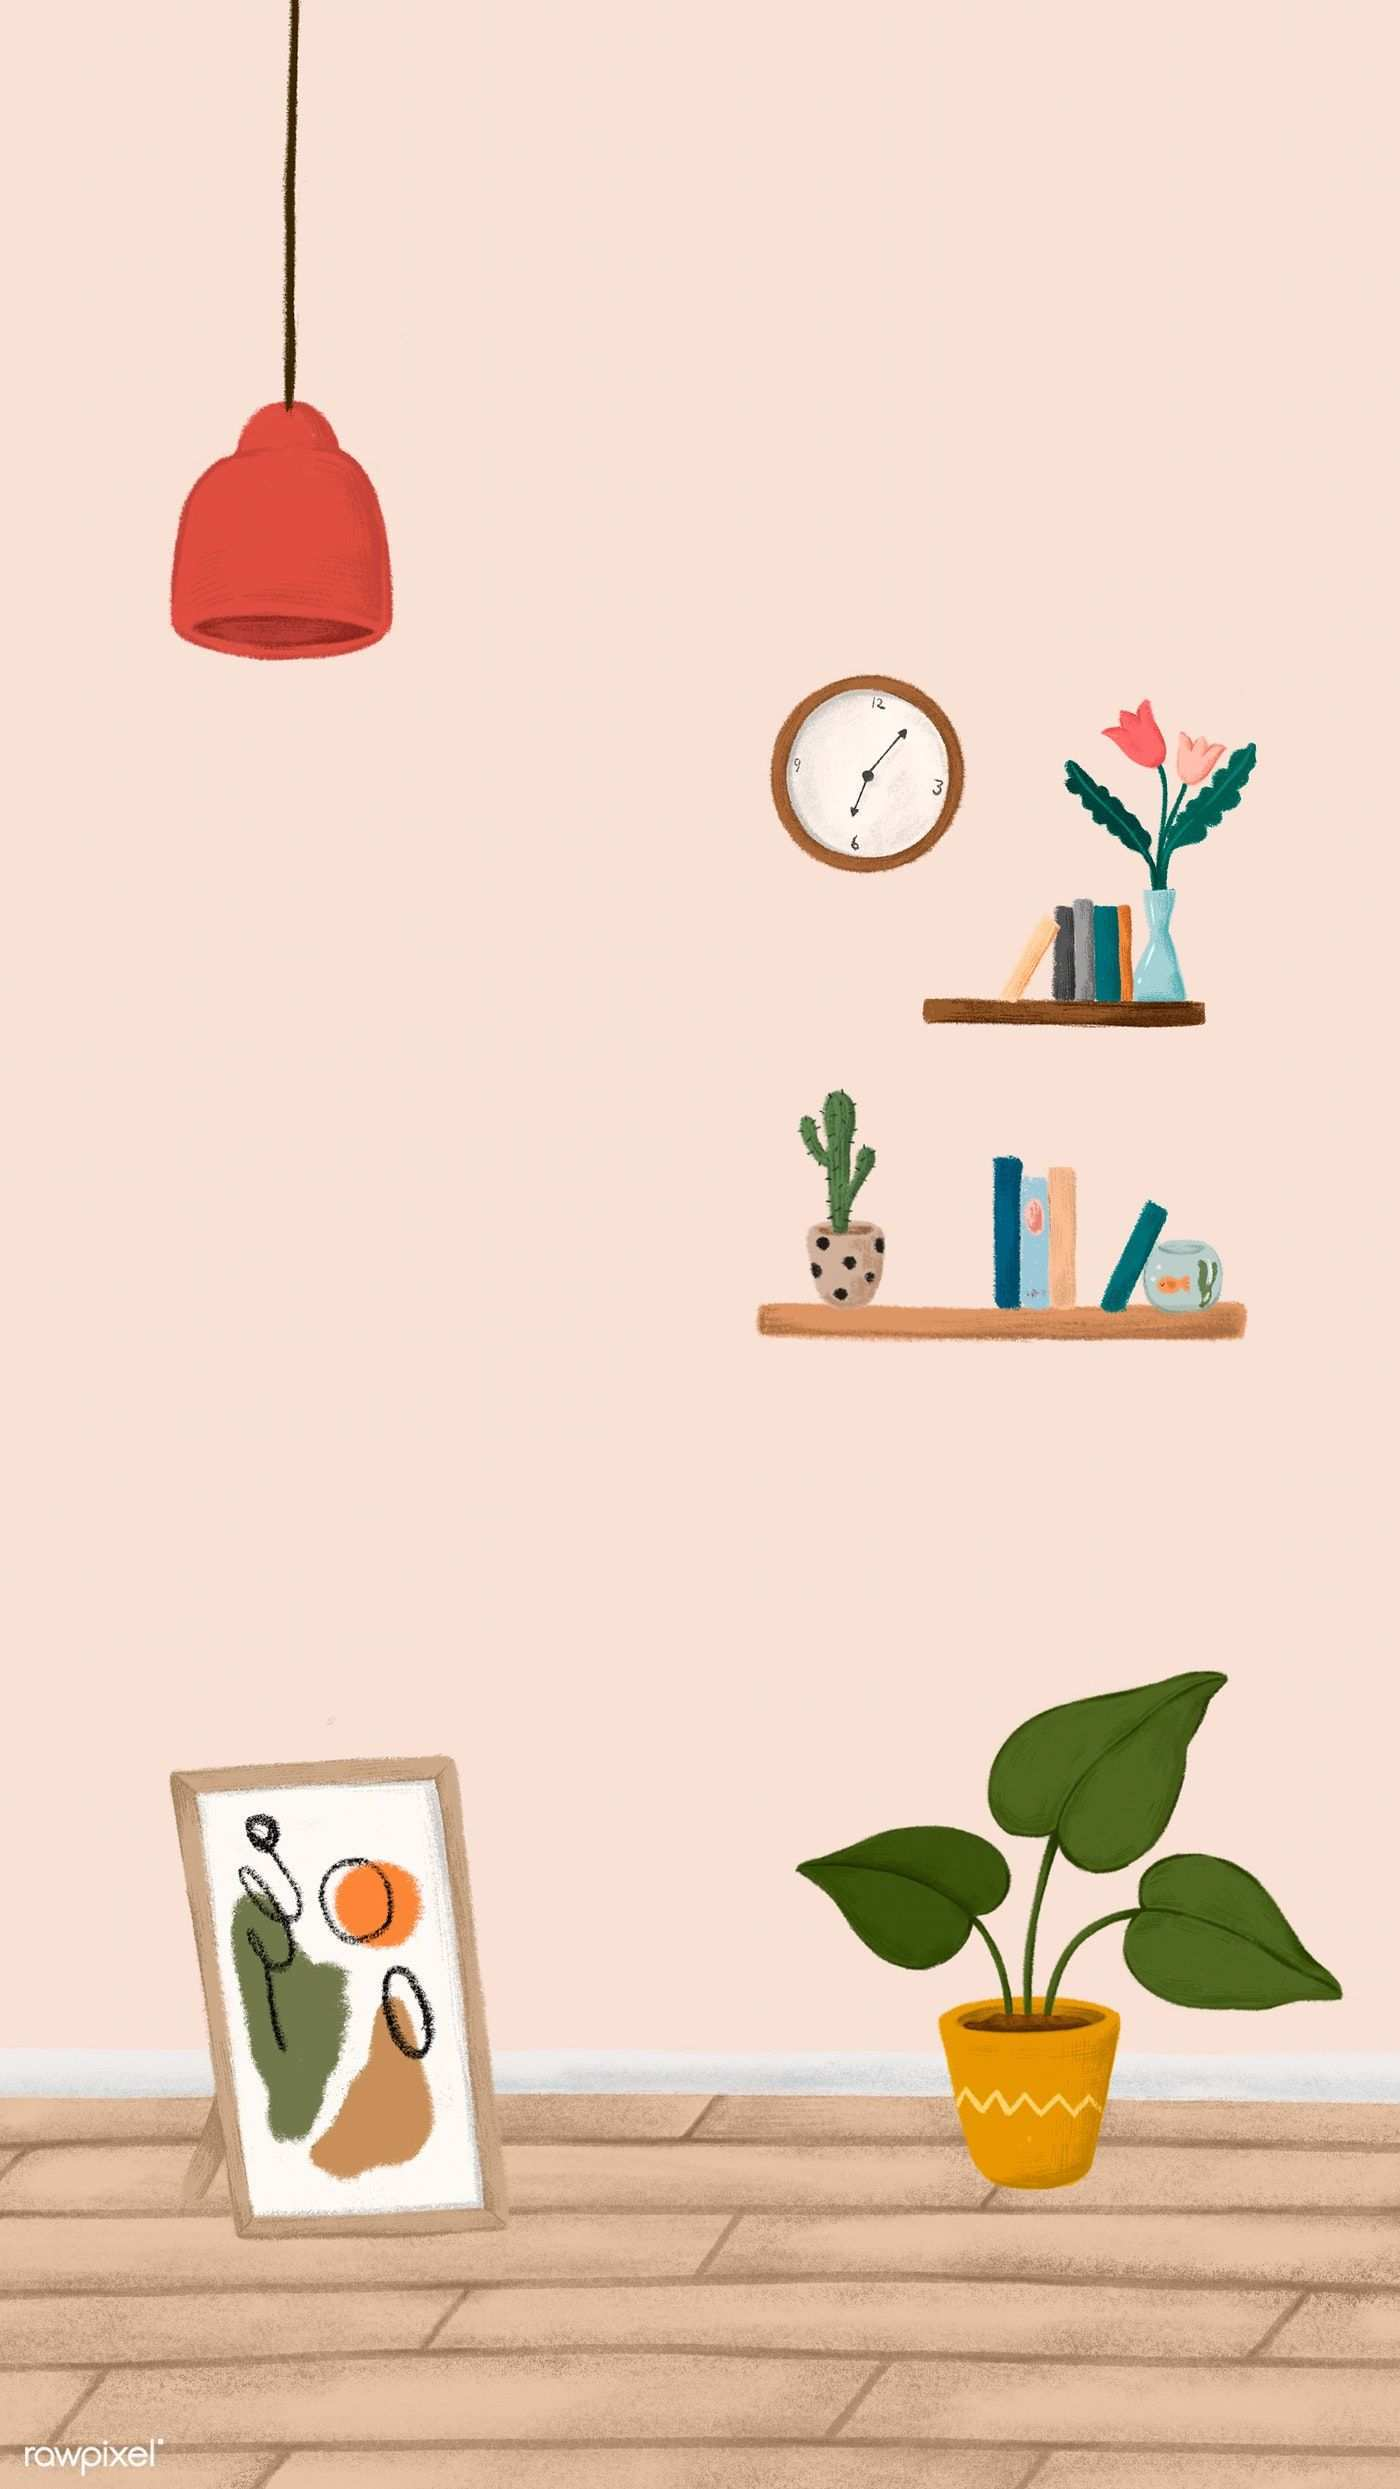 House Interior Mobile Phone Wallpaper Sketch Style Vector Premium Image By Rawpixel Com Noon Phone Wallpaper Wallpaper Art Wallpaper